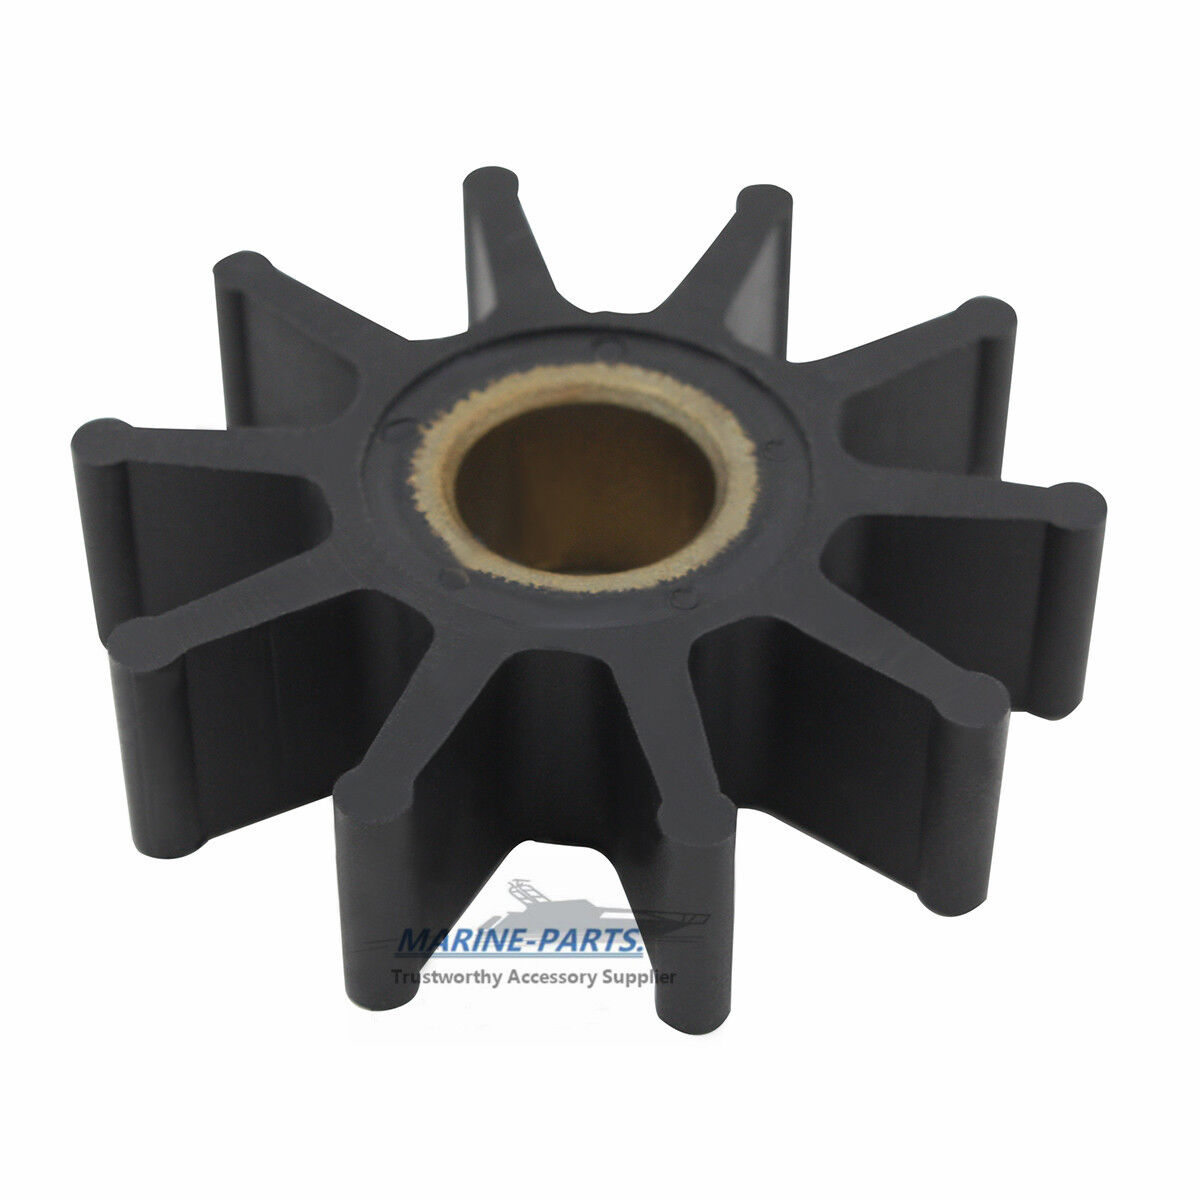 Water Pump Impeller 47-F462065 20-35 HP Replacement for Chrysler Force Outboard